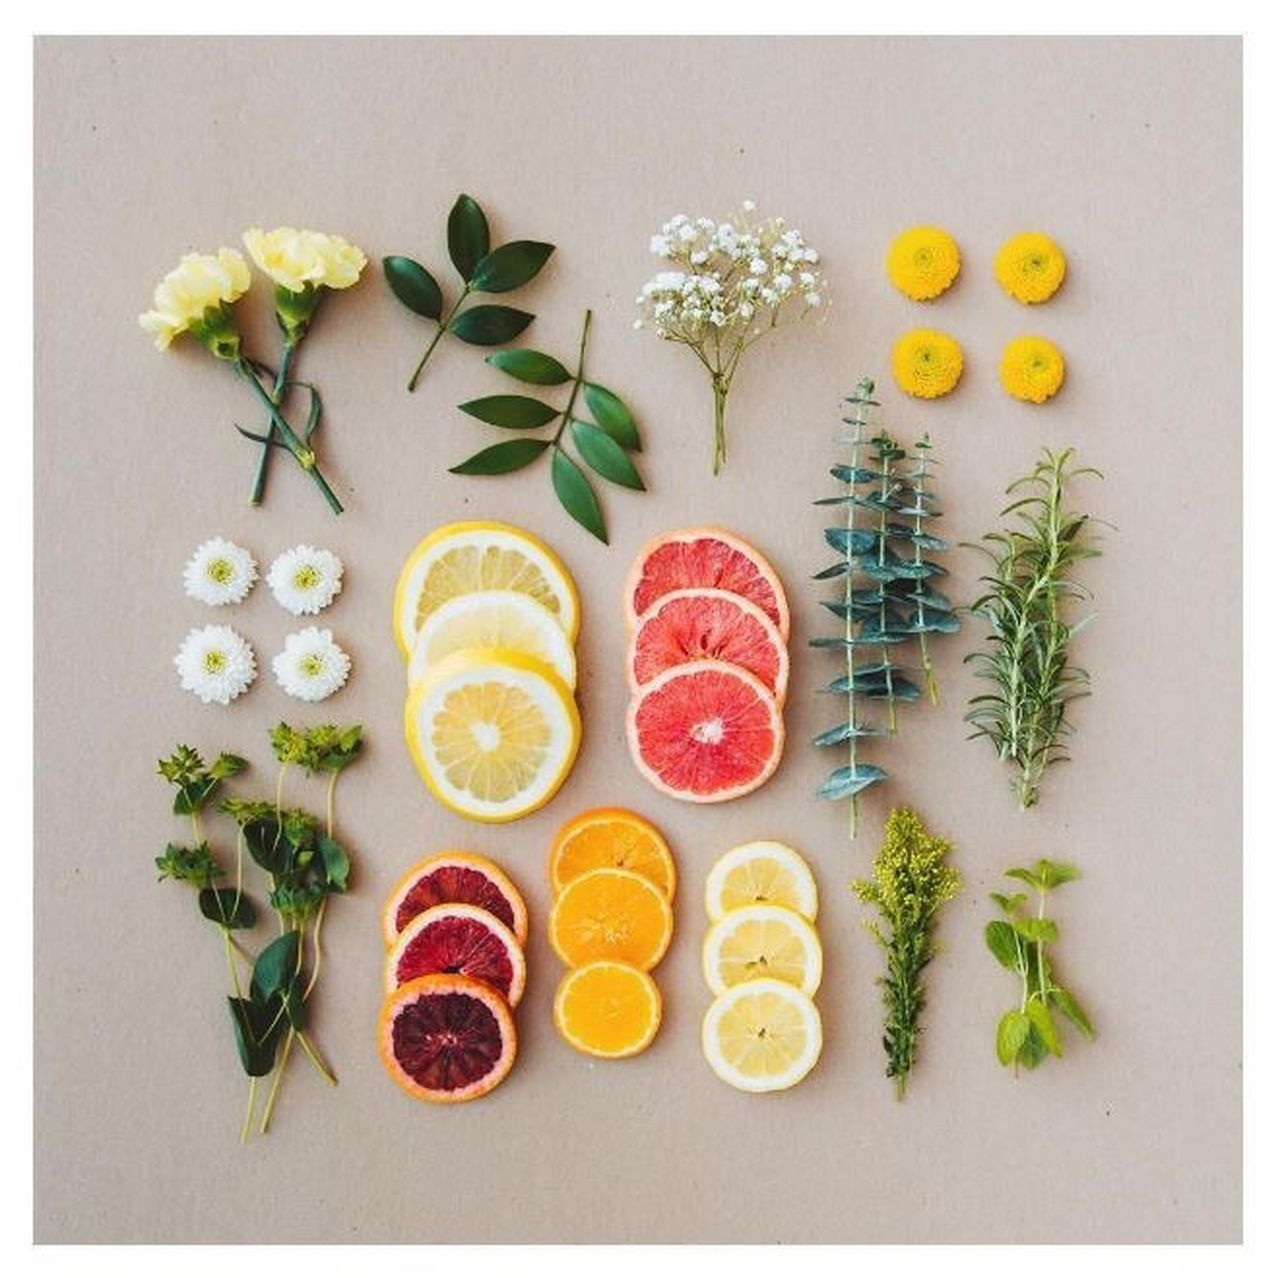 Variation Directly Above Fruit Food Studio Shot No People SLICE Arrangement Healthy Eating Freshness Grapefruit Kiwi - Fruit Indoors  Day Propstyling Foodstyling Foodphotography